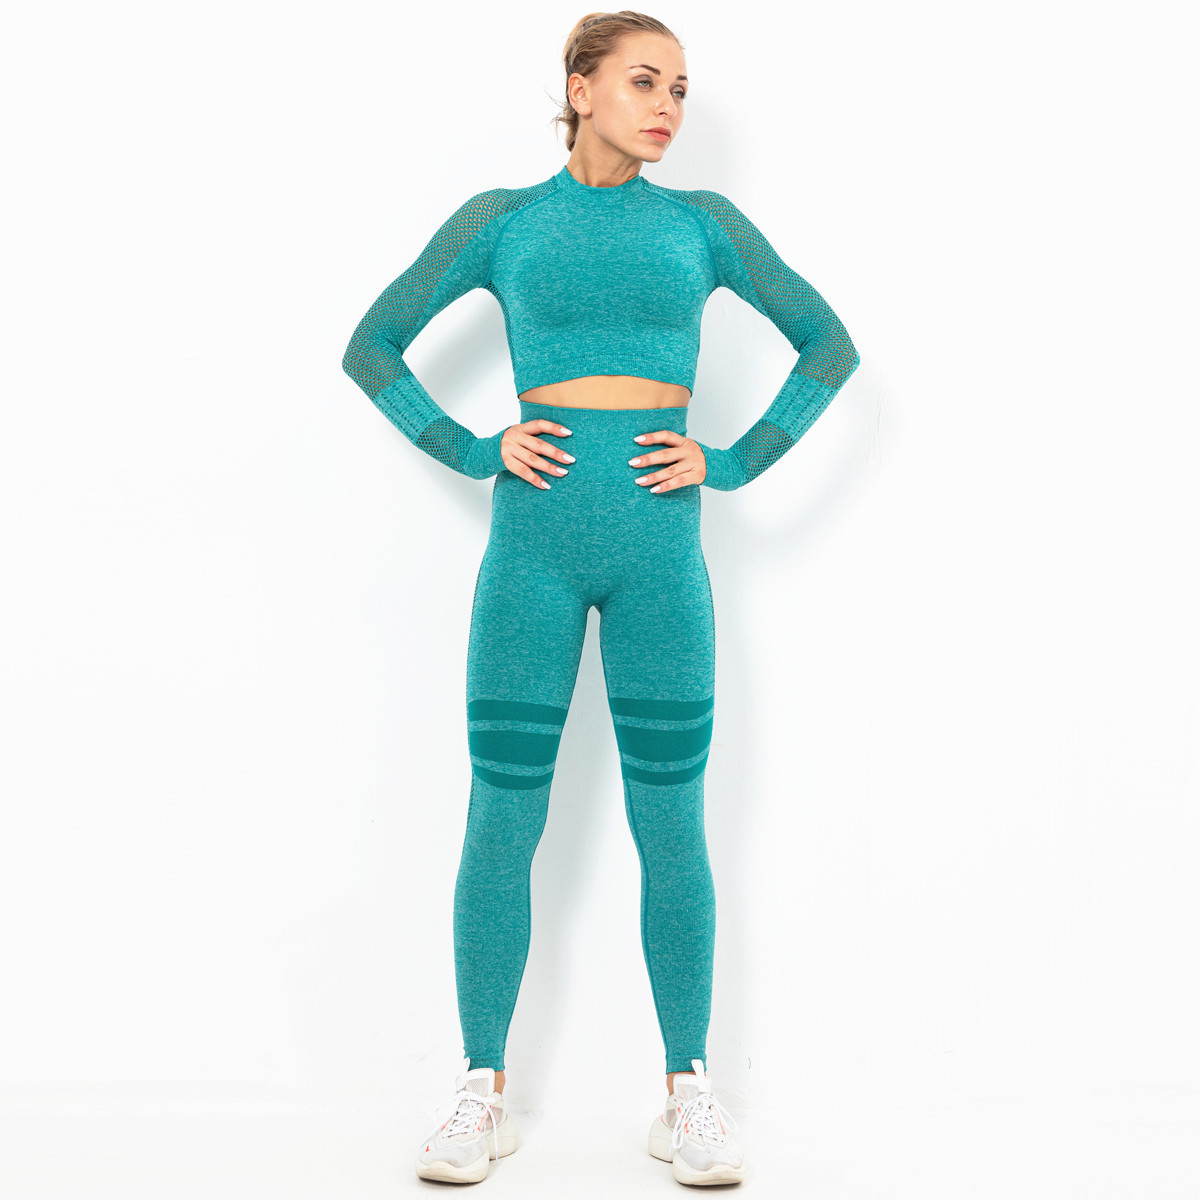 tight-fitting hip pants slim long-sleeved two-piece yoga suit NSLX8981